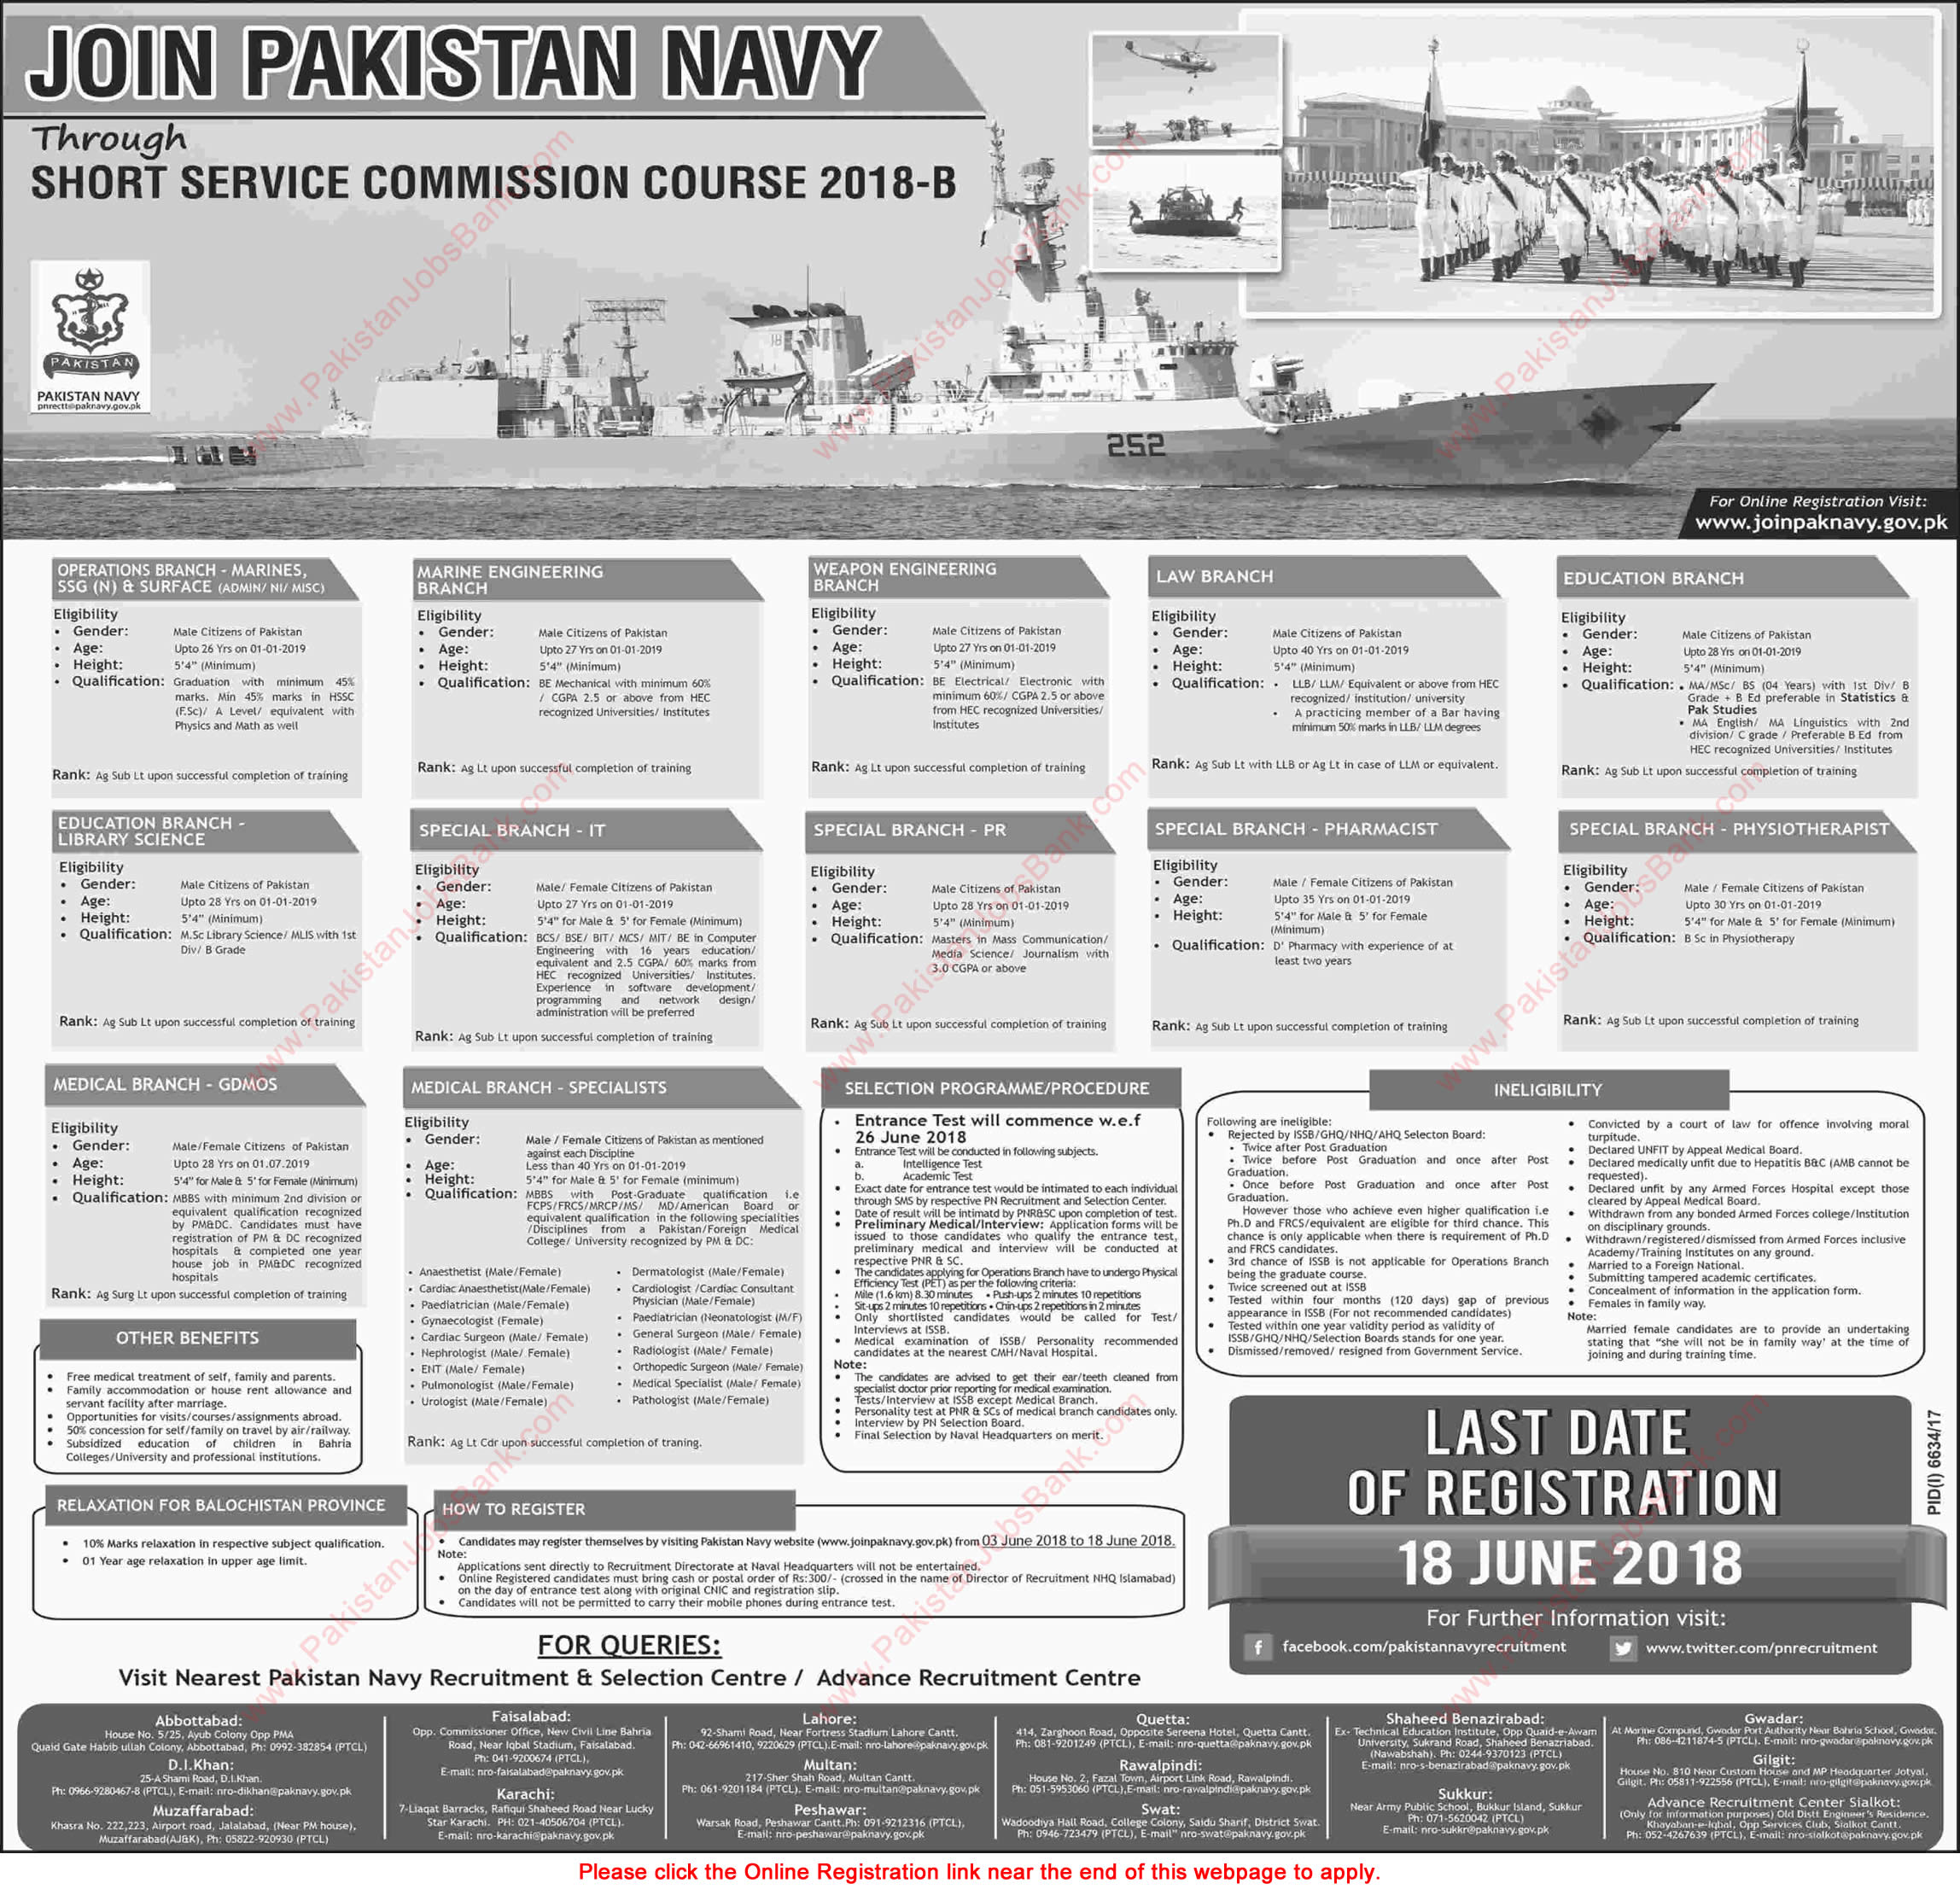 Join Pakistan Navy through Short Service Commission Course 2018-B Online Registration Latest